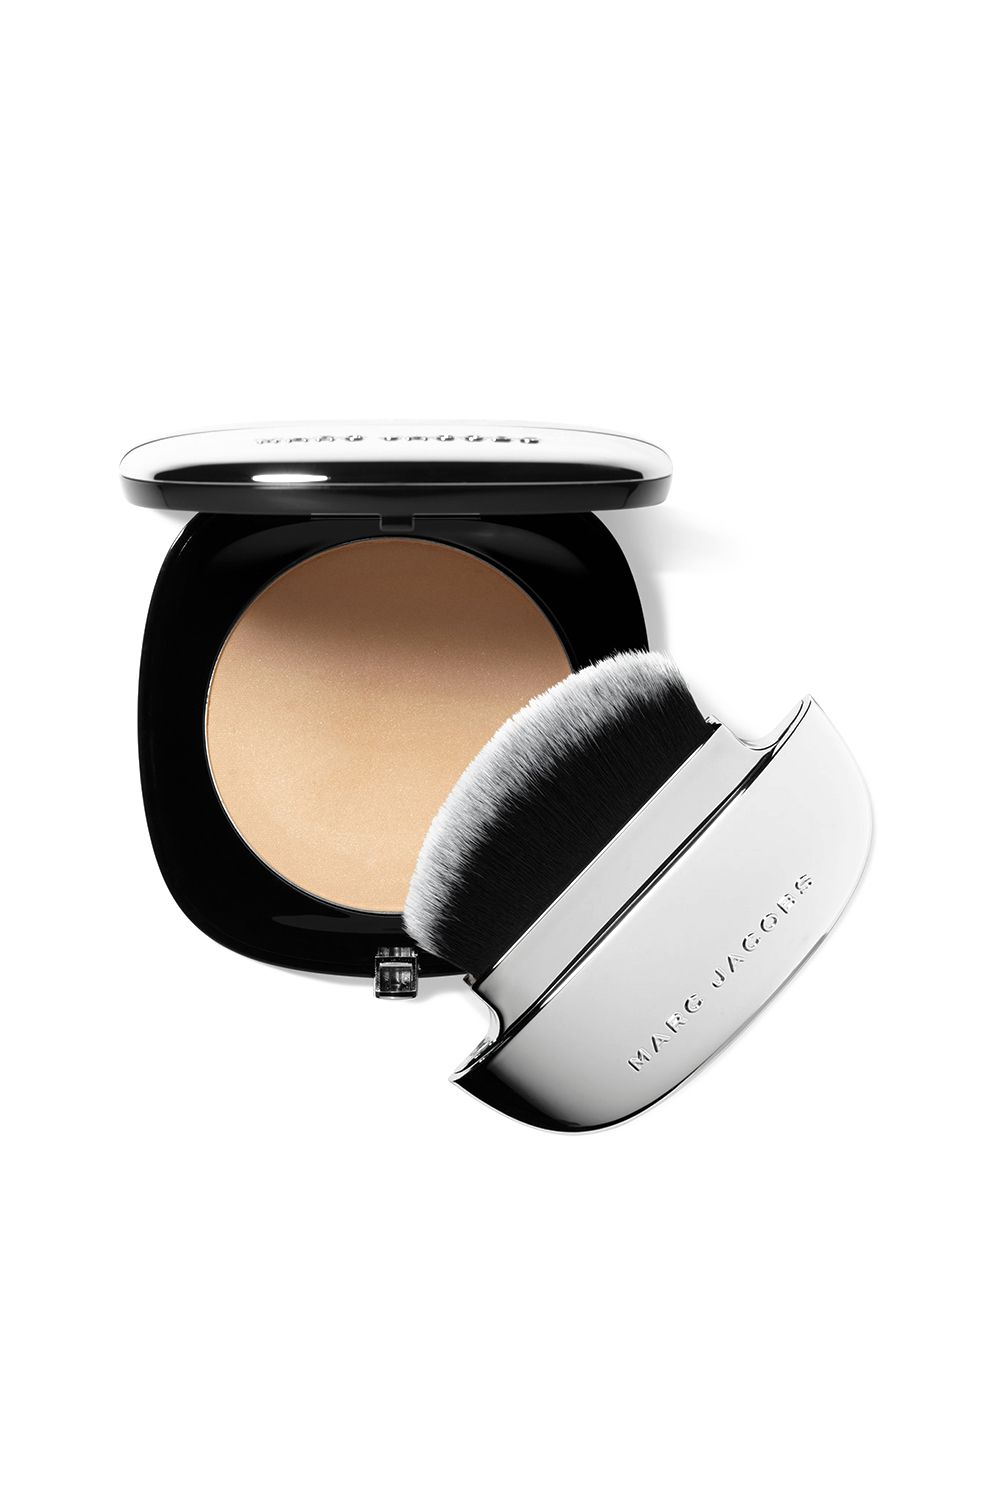 This Magical Blurring Powder Marc Jacobs Beauty Accomplice Instant Blurring Beauty Powder, $49 SHOP IT Ever since celebrity makeup artist Nam Vo demonstrated the magic of this blurring powder on my skin, I've been telling the whole world about it. So, it's your turn to hear me rave about this now: This pearl pigment-infused powder will control shine, blur your imperfections, and give your skin the most insanely-amazing glow.